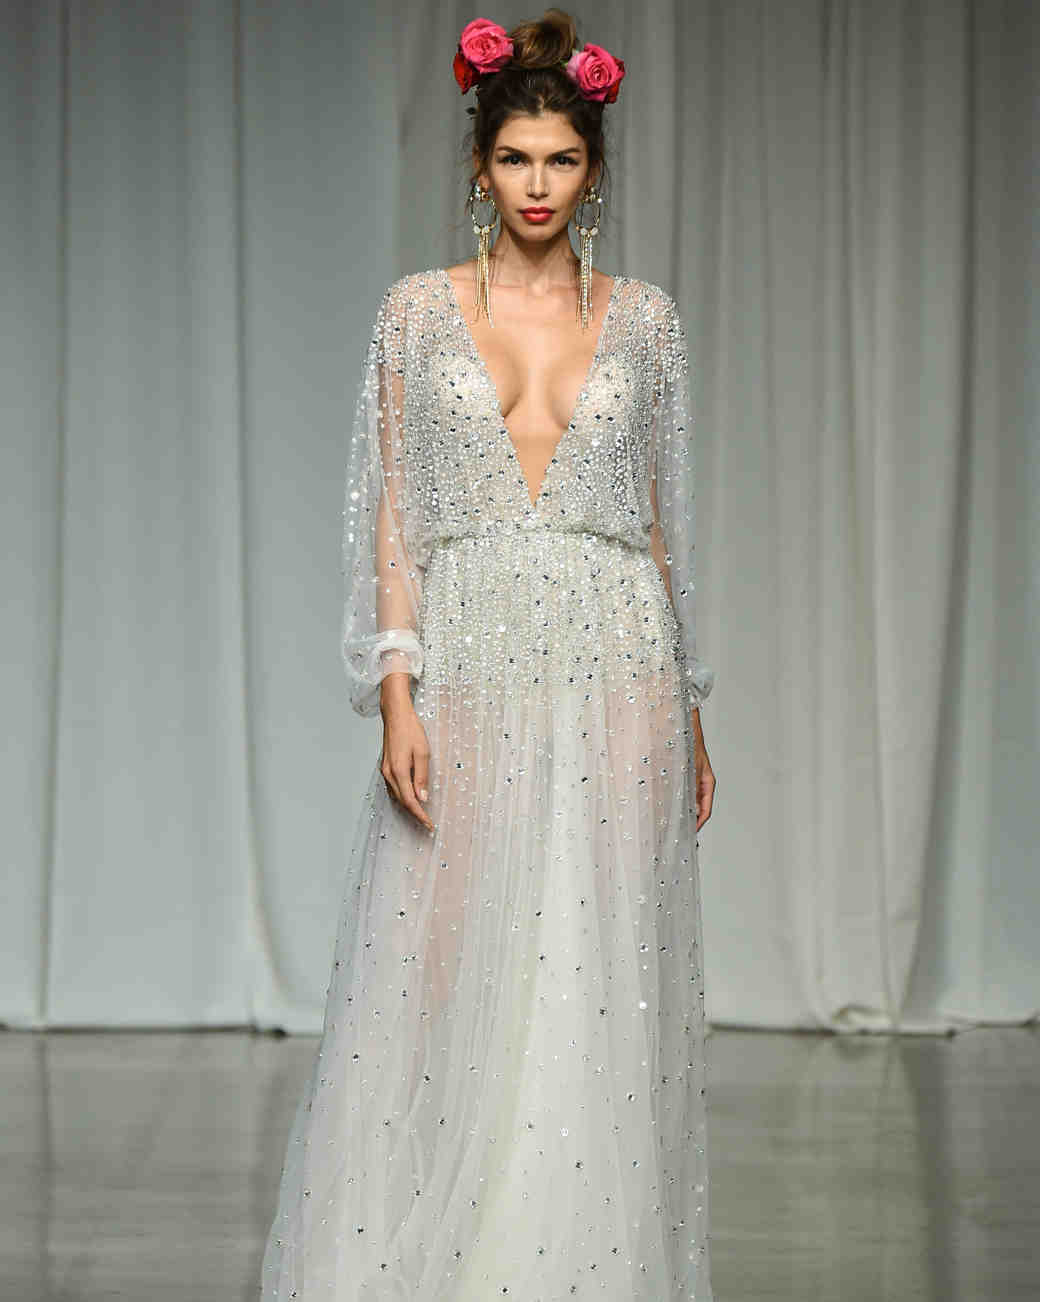 julie vino group fall 2019 long sleeve sheath glitter wedding dress